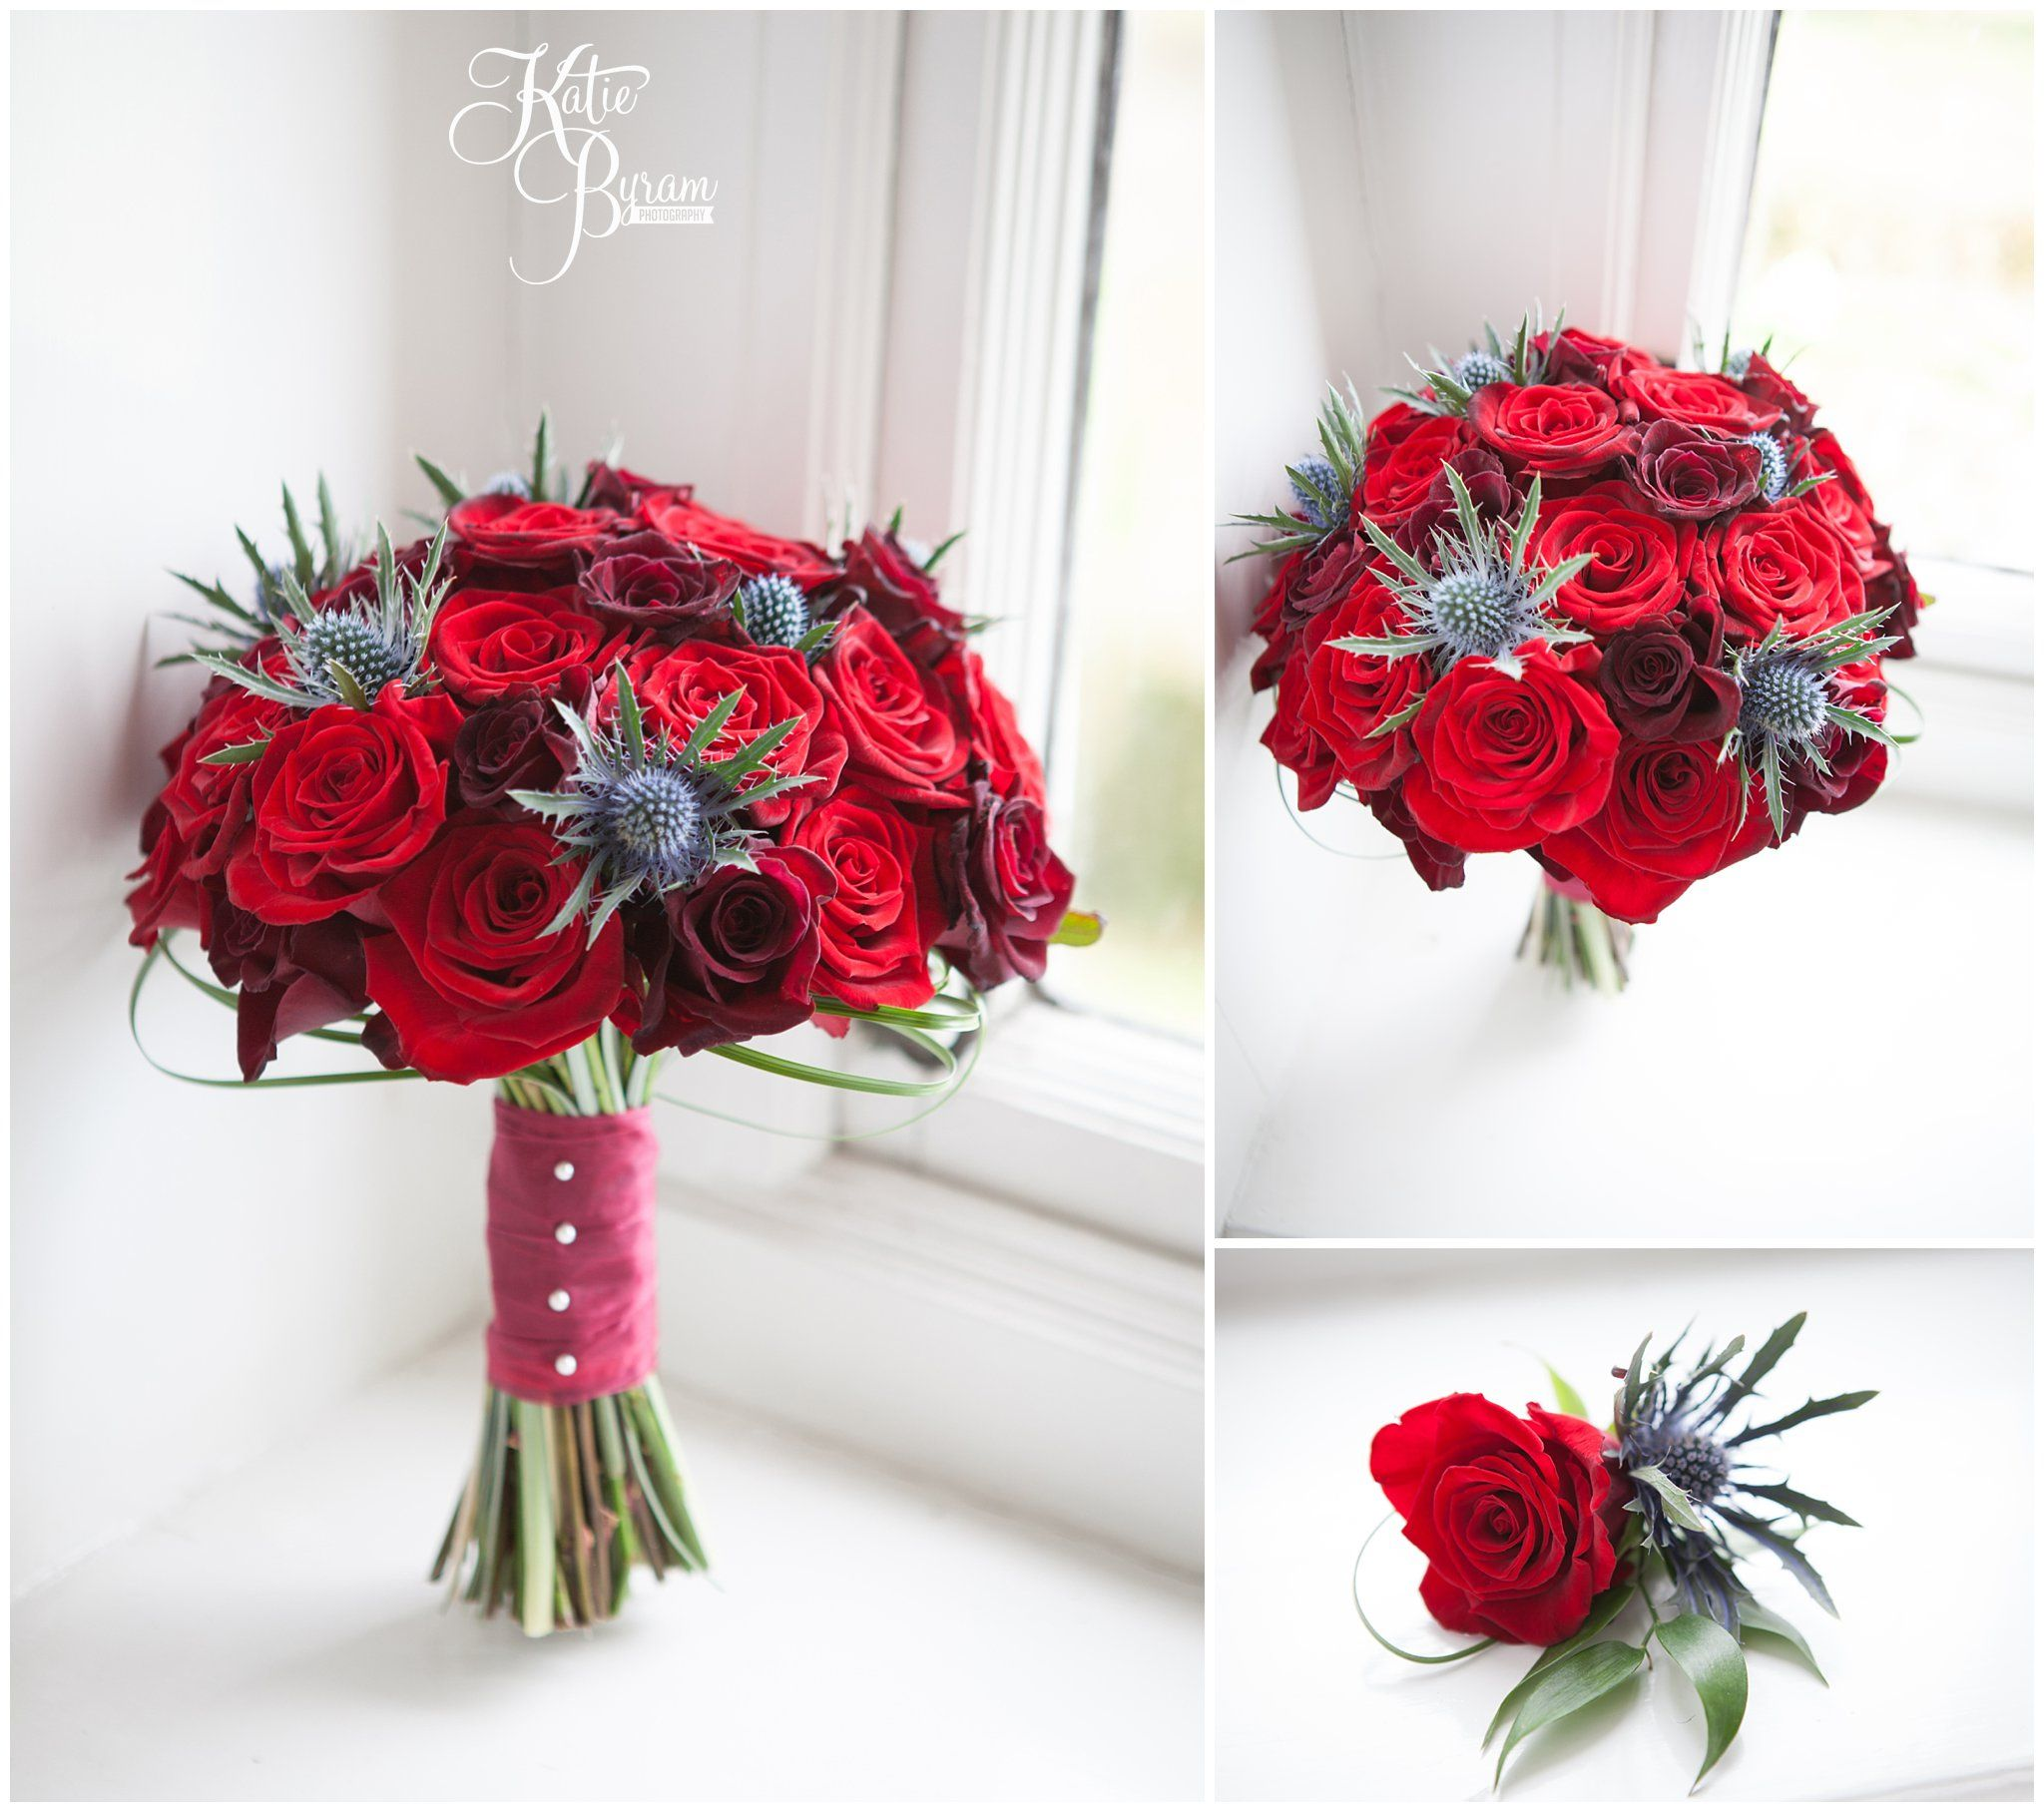 Red roses and thistles wedding flowers bouquet and button hole from ...